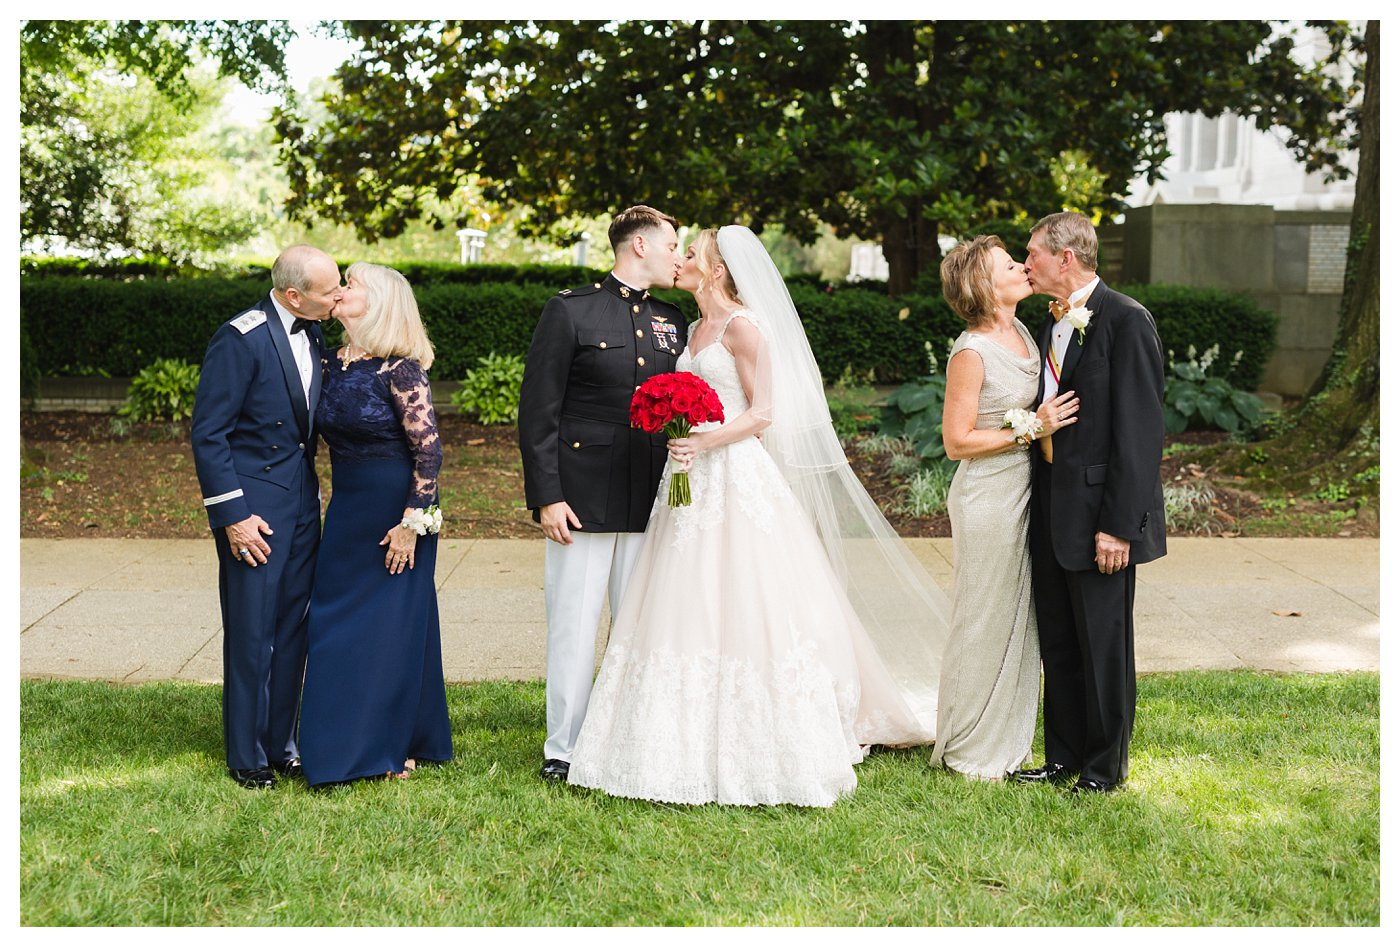 Navy Army and Marine Corps Wedding at the United States Navy Academy